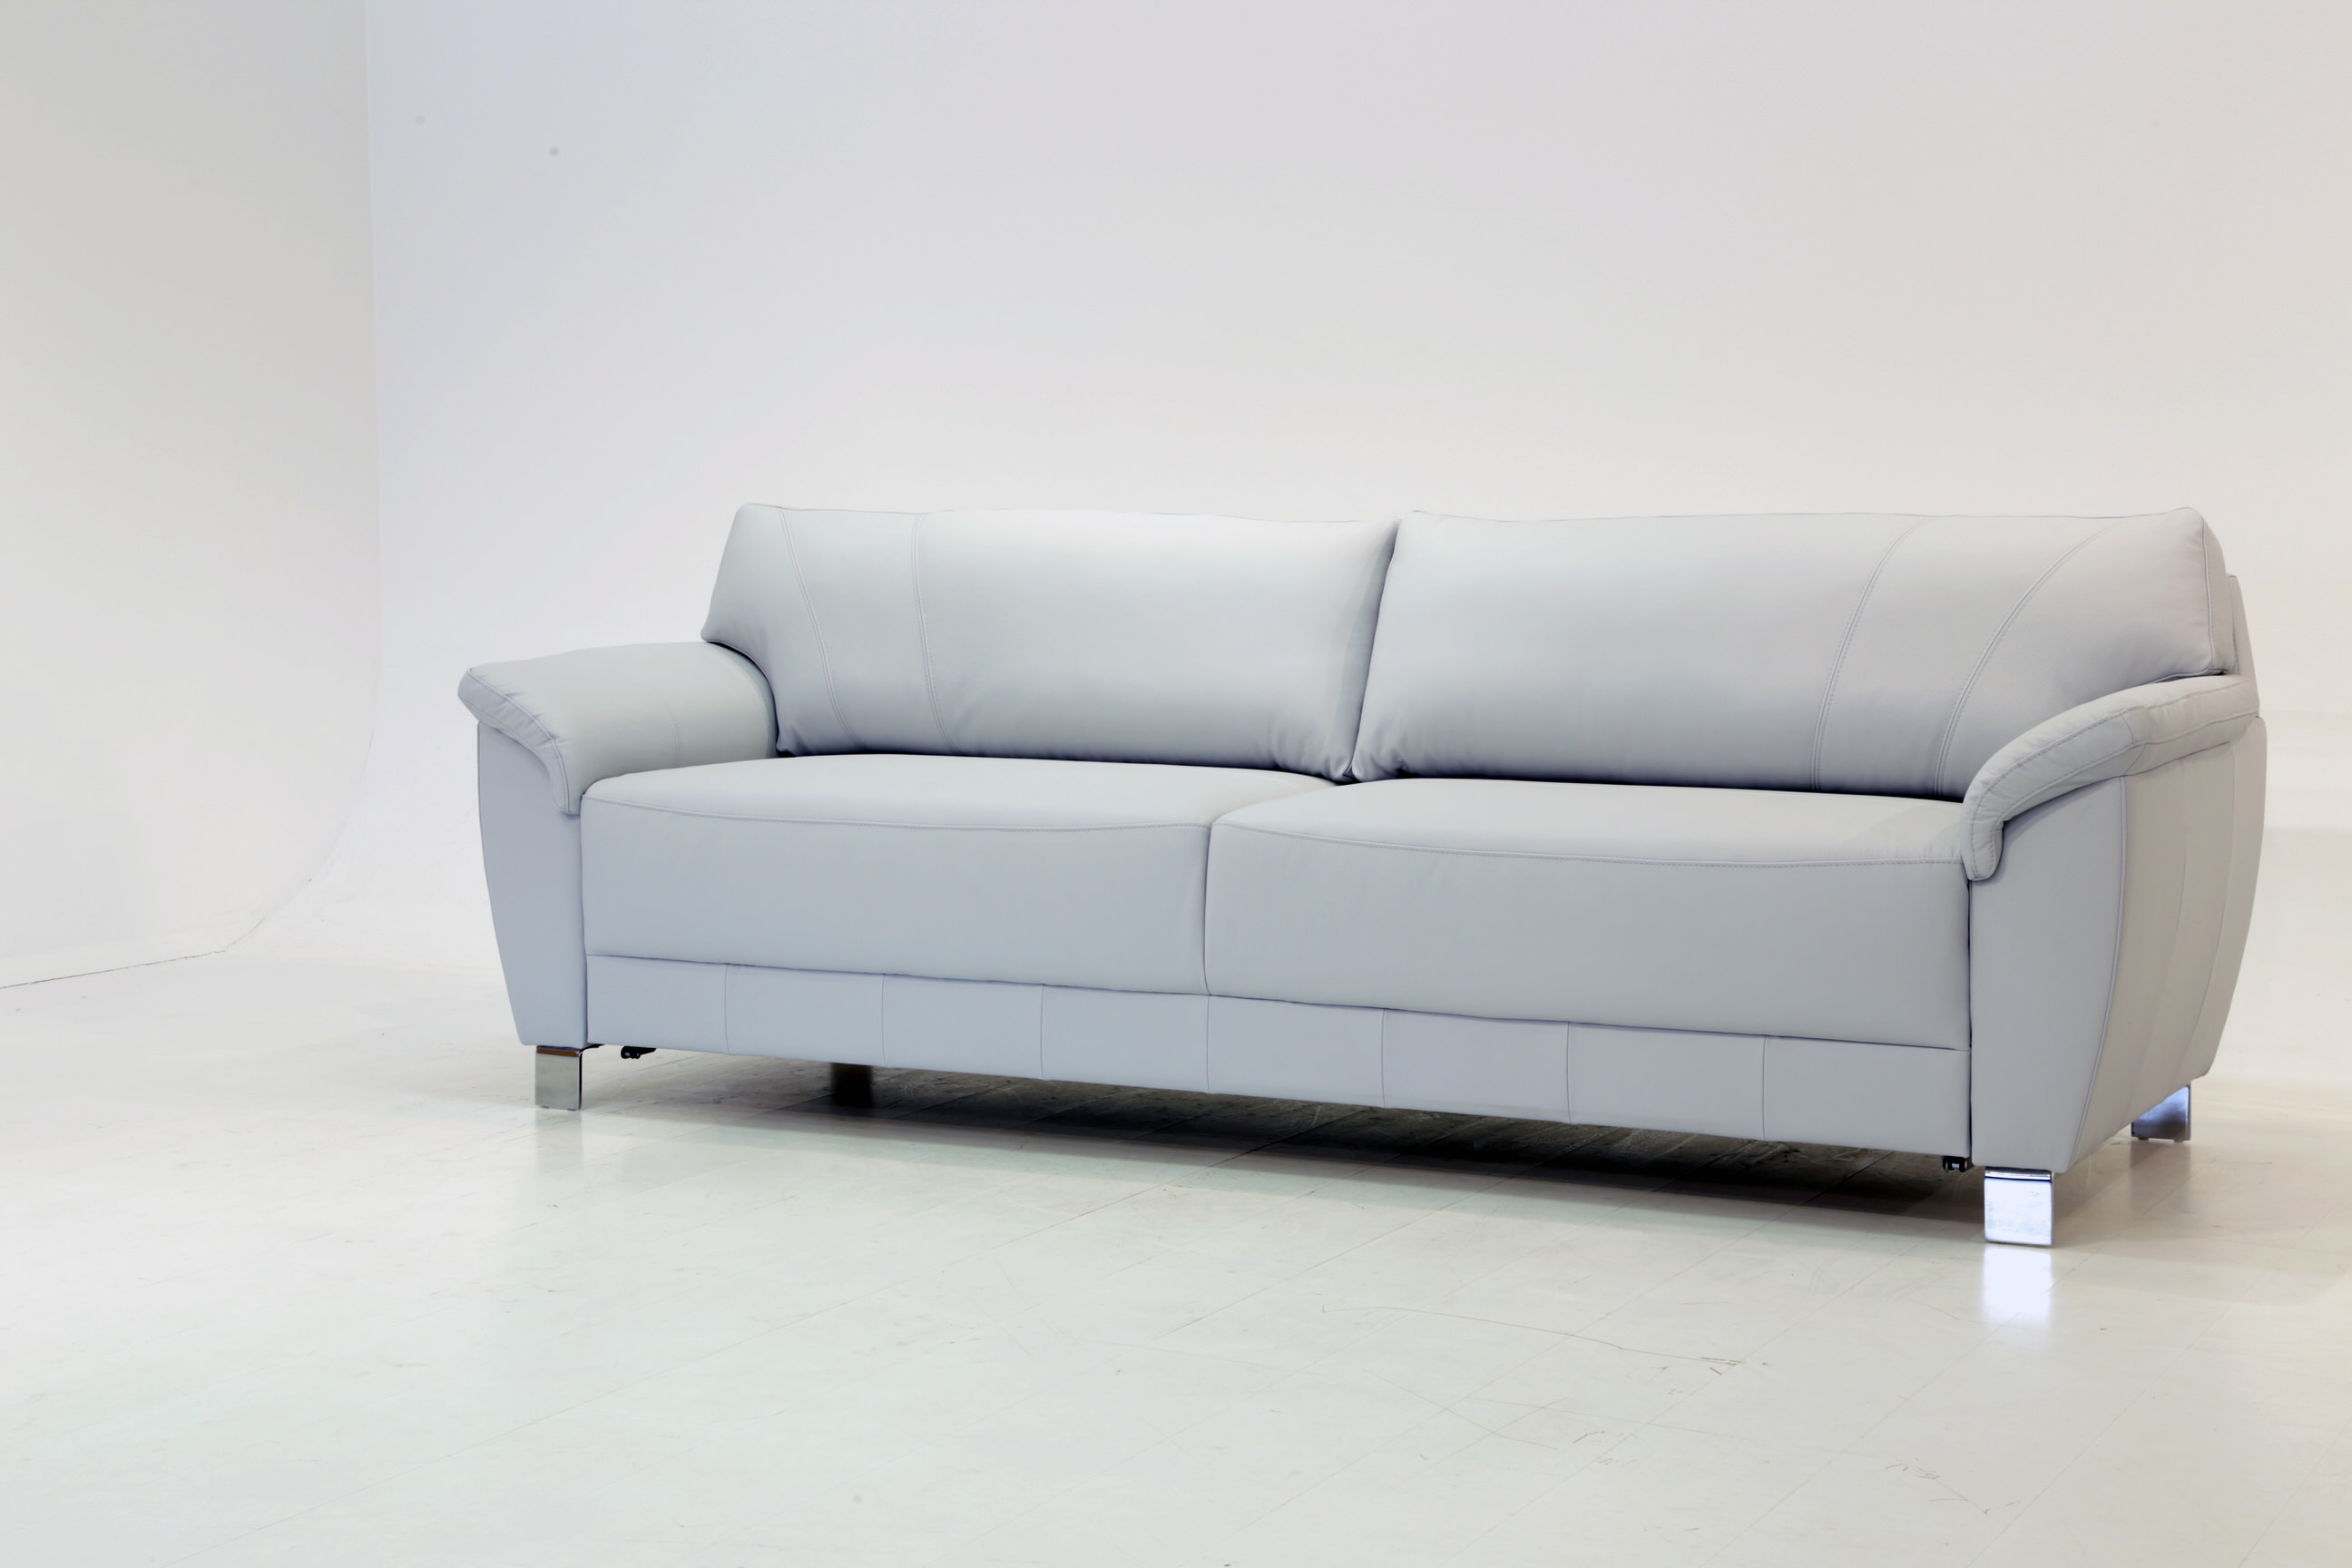 Phenomenal Grace Sofa Sleeper Full Xl Size By Luonto Furniture Gmtry Best Dining Table And Chair Ideas Images Gmtryco